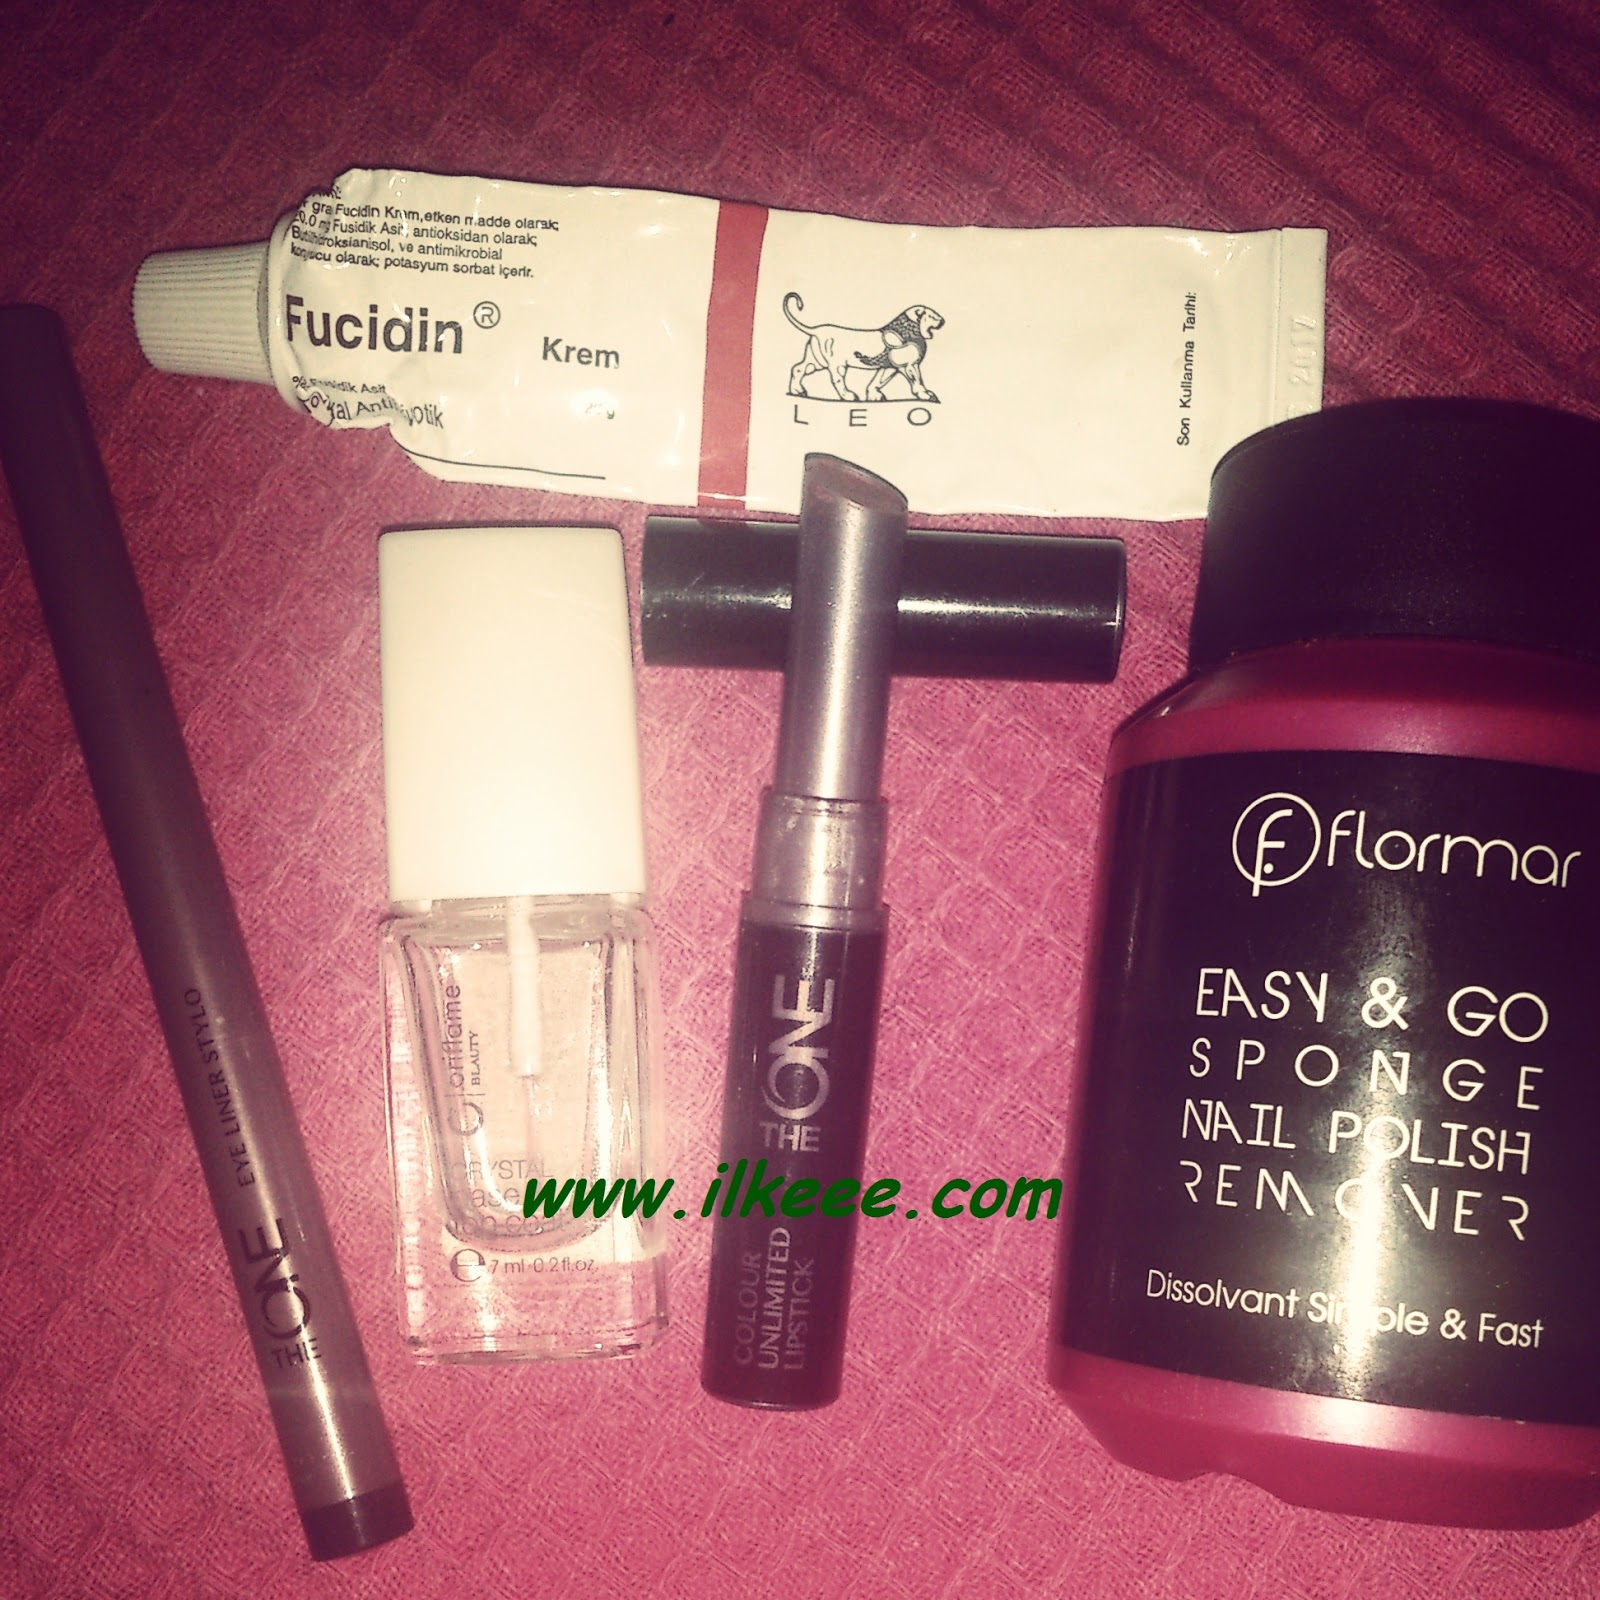 Flormar - Flormar Aseton - Flormar Easy and Go sponge nail remover - Fucidin Krem - Oriflame Crystal Base and Top Coat - The One serisi kullananlar - The one Eyeliner